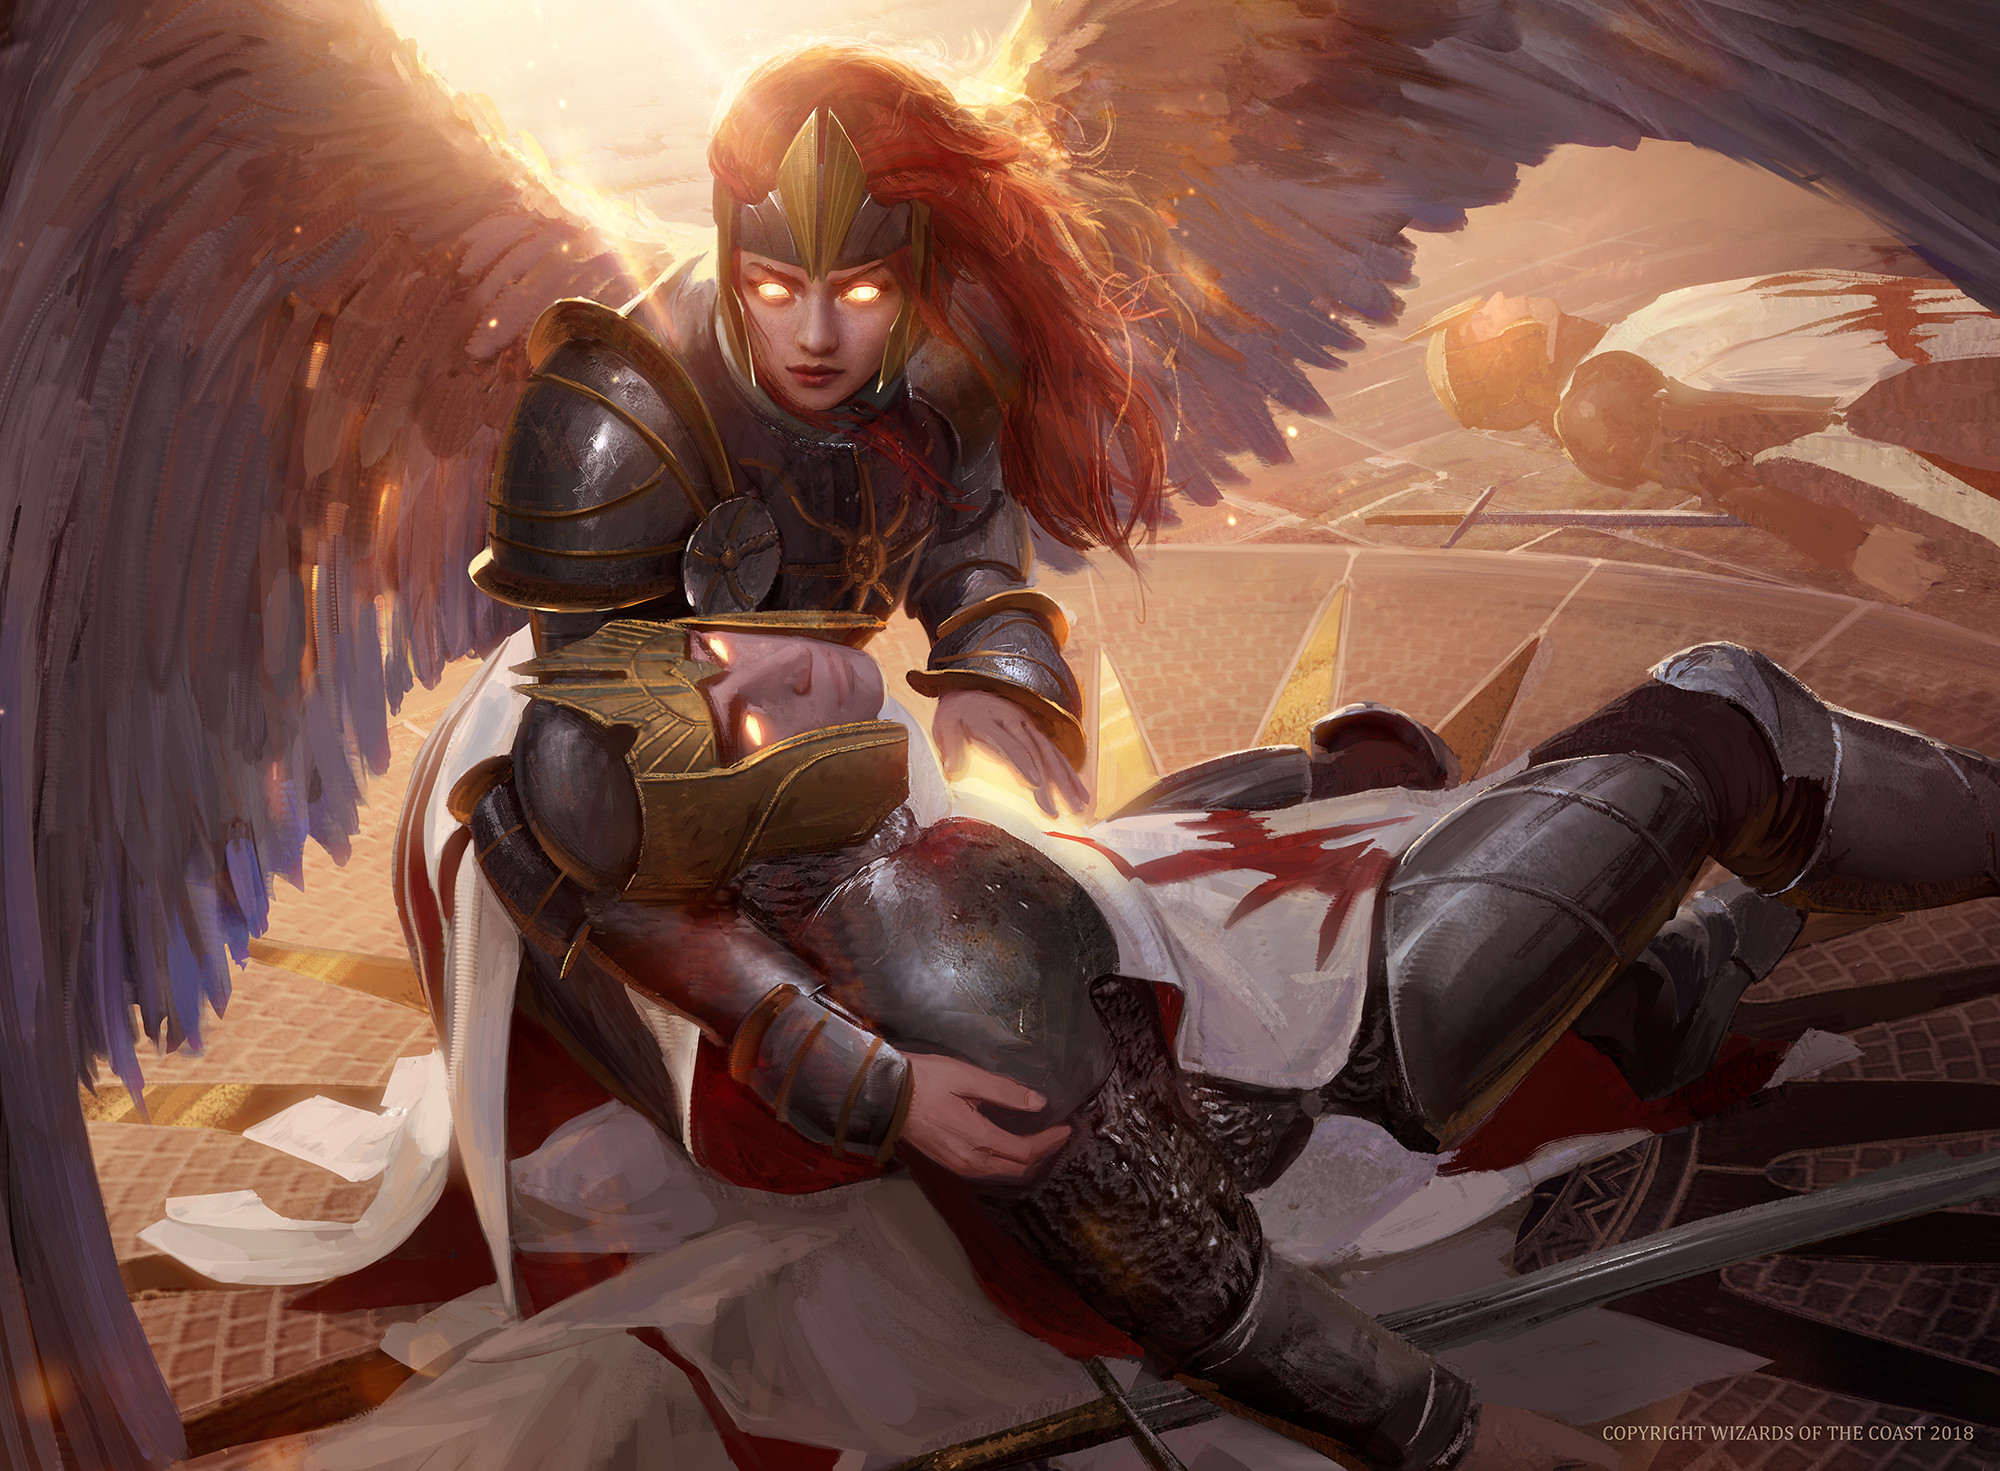 Chance for Glory Art by Bram Sels